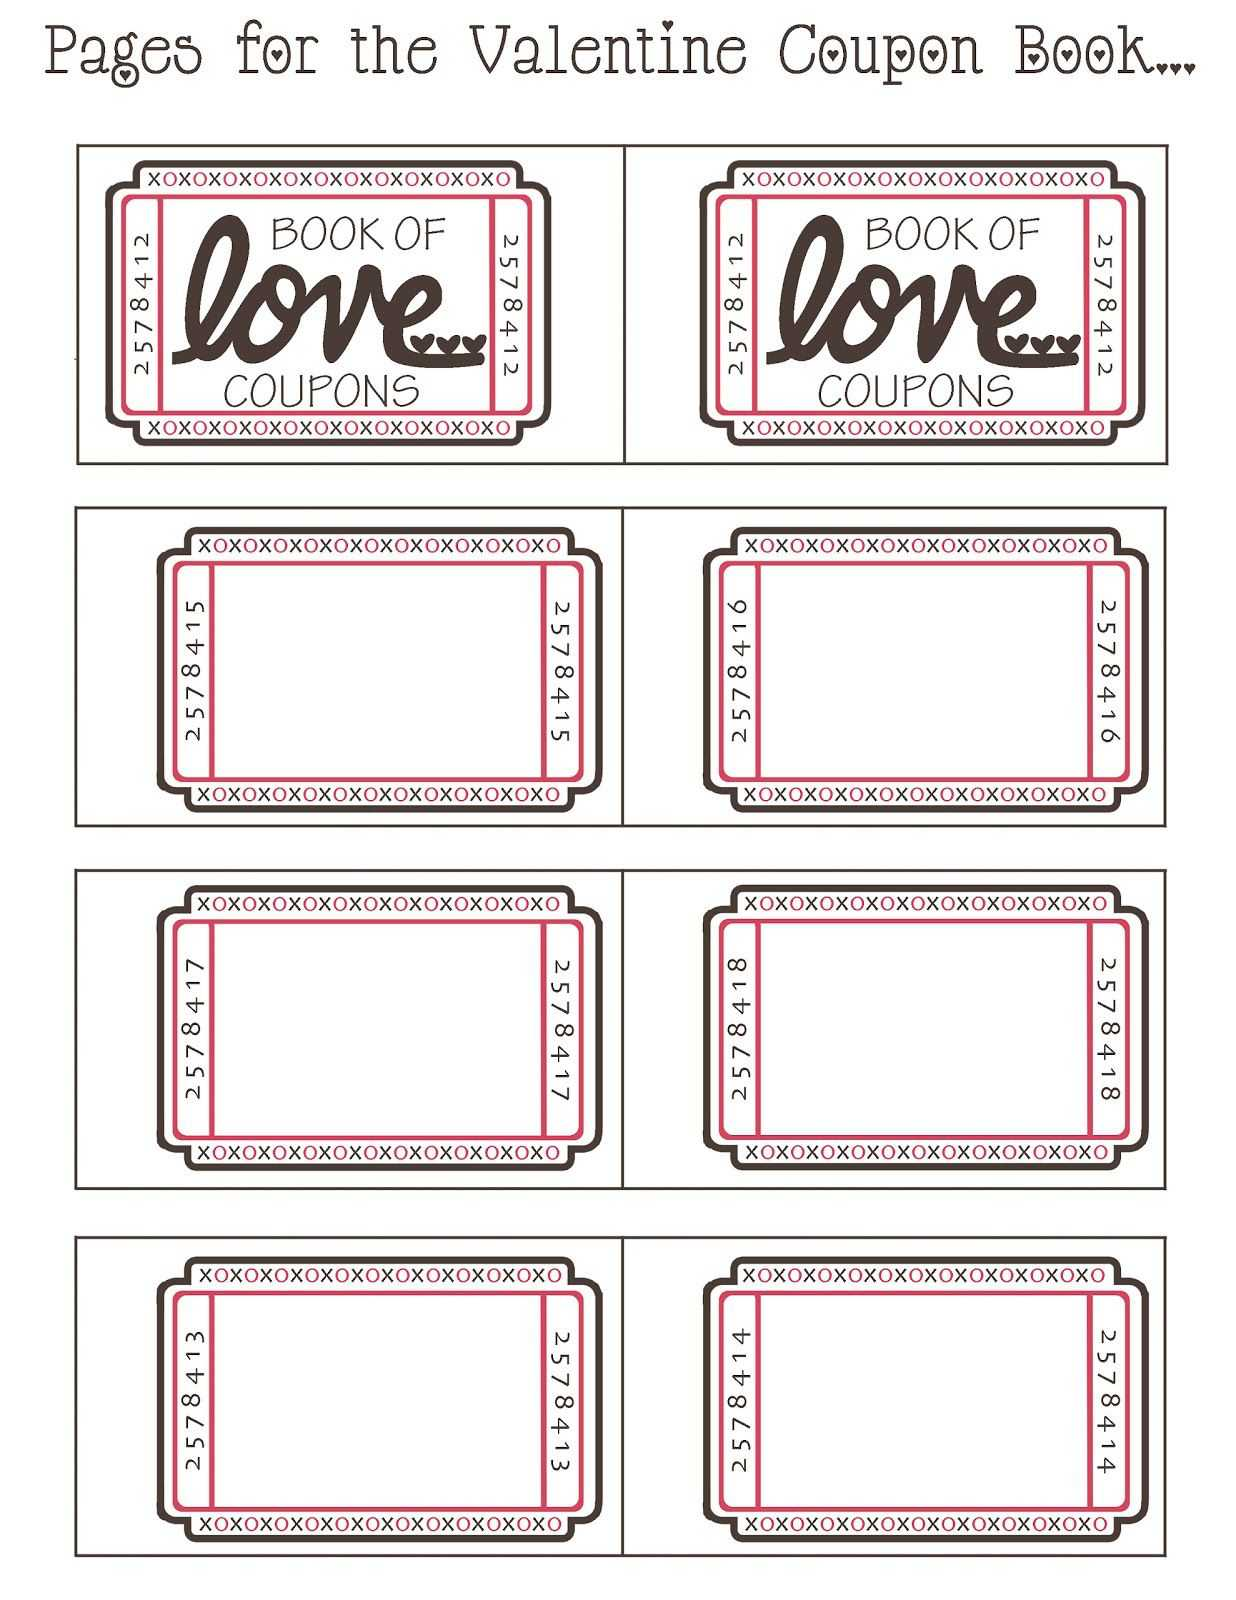 Coupon Book Ideas For Husband. Blank Love Coupon Templates With Regard To Blank Coupon Template Printable